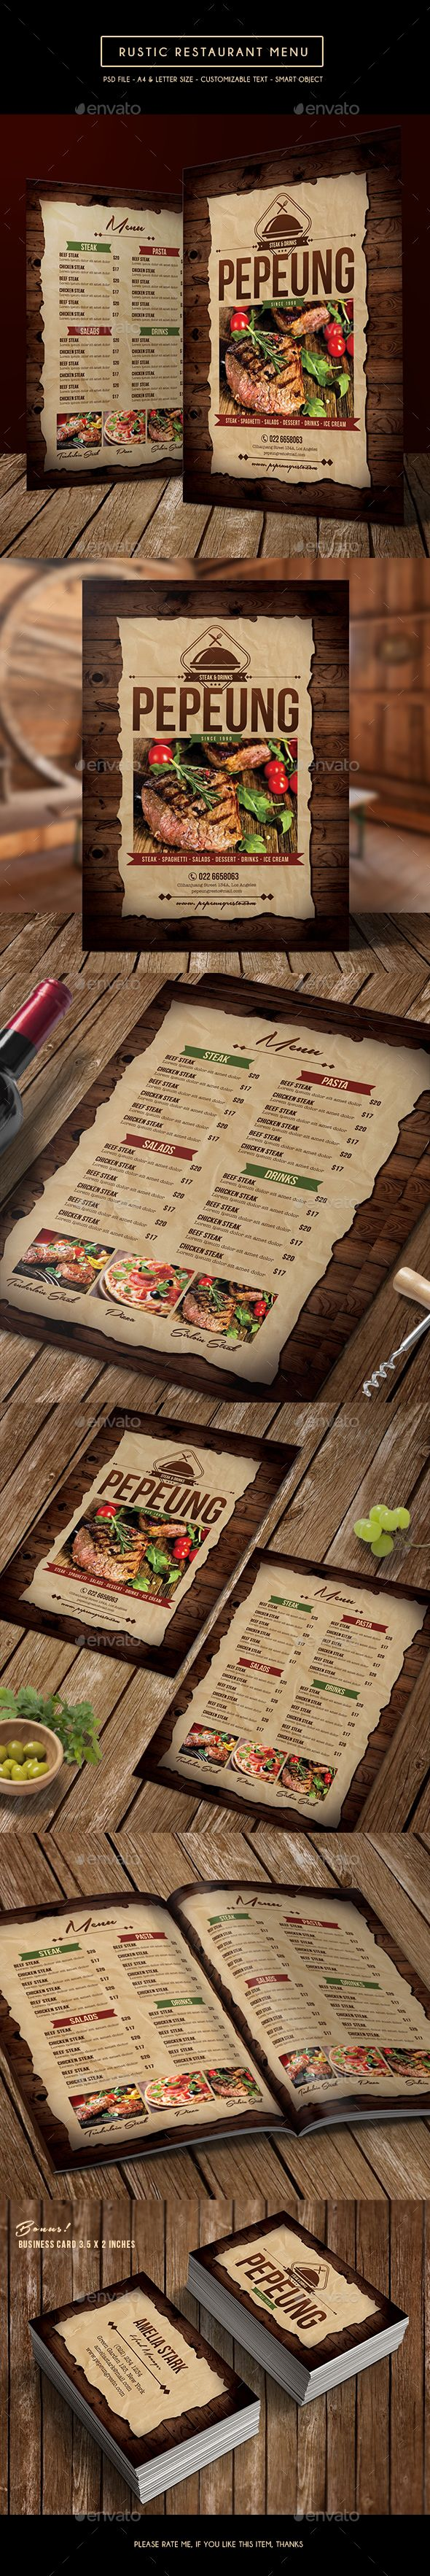 best 25+ rustic restaurant ideas only on pinterest | rustic